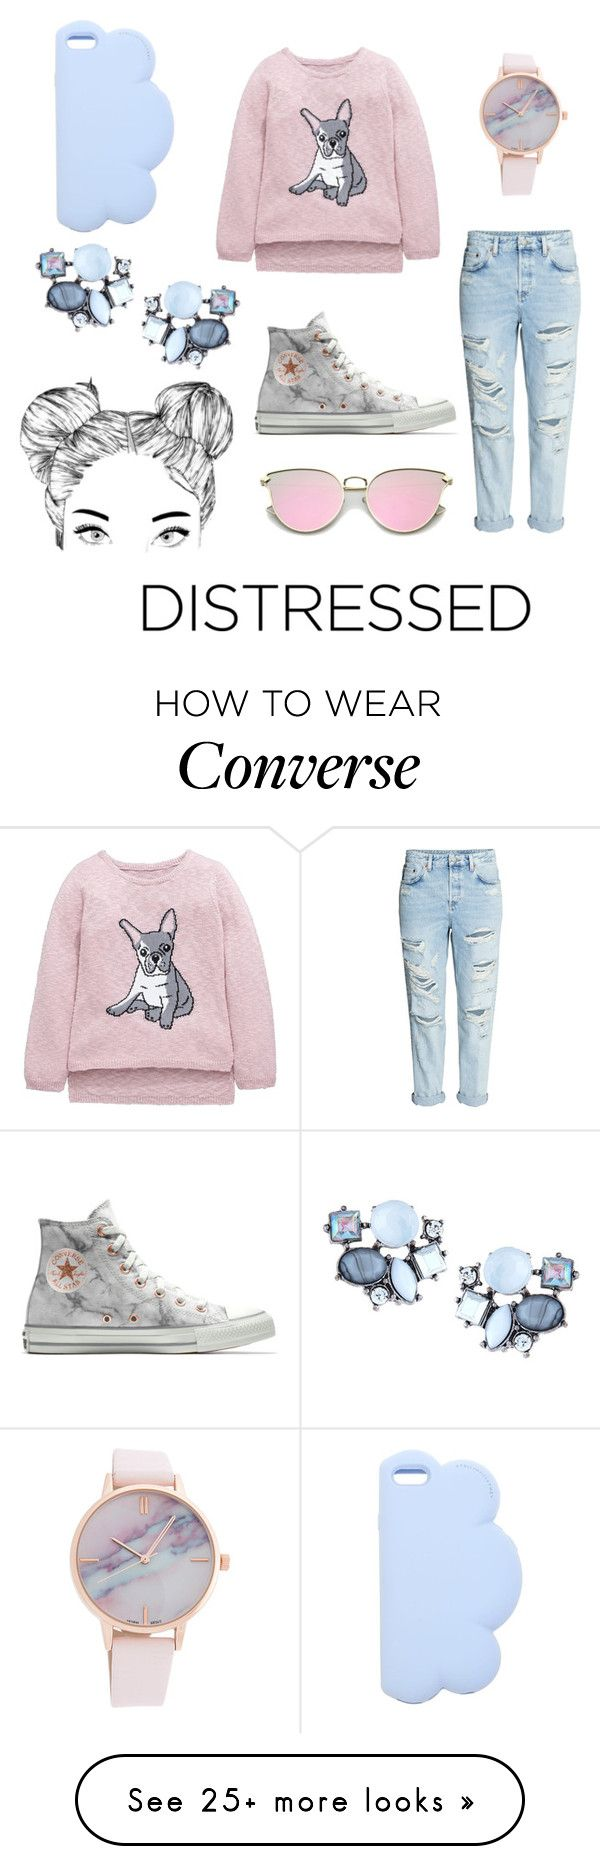 """""""Untitled #38"""" by glitterunicorn13 on Polyvore featuring Converse, Lydell NYC and STELLA McCARTNEY"""